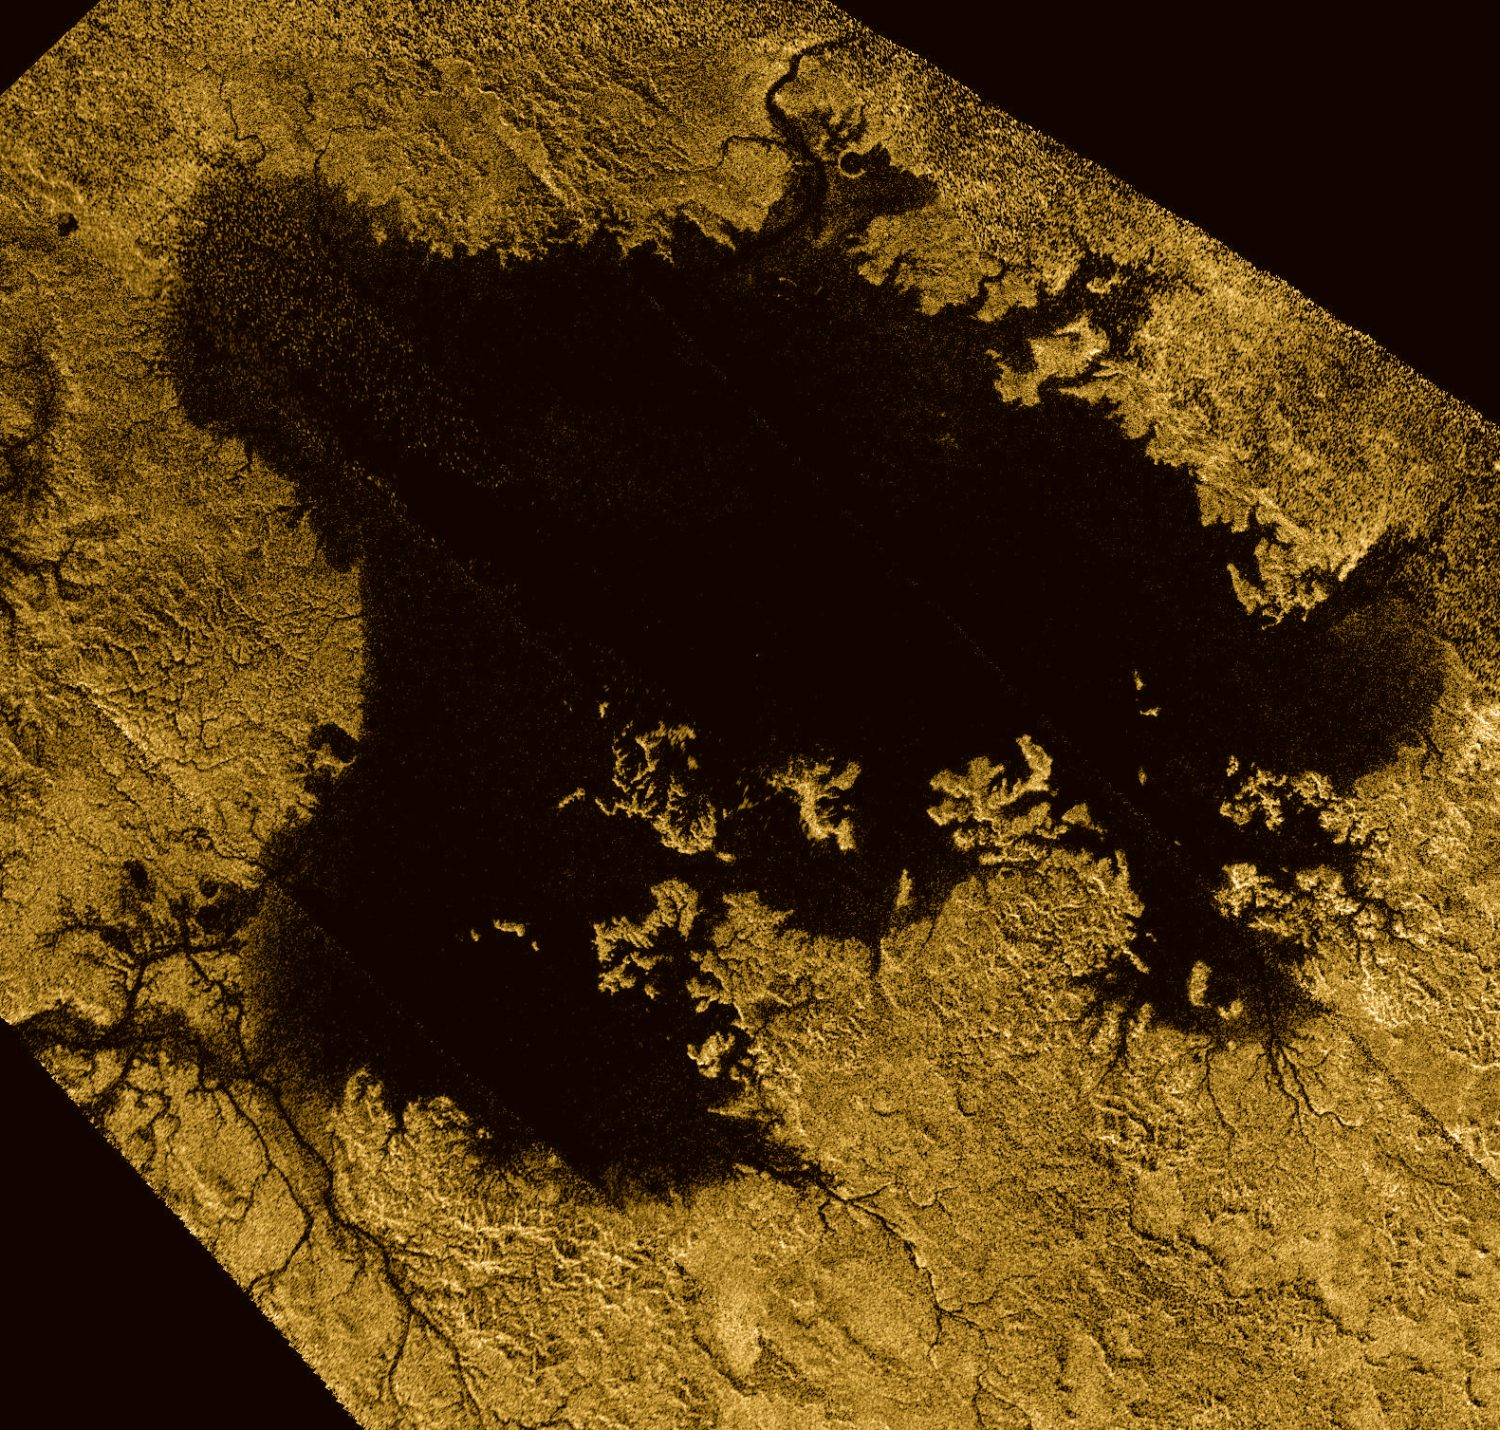 Ligeia Mare, the second largest known body of liquid on Saturn's moon Titan, shown in data obtained by NASA's Cassini spacecraft, is pictured in this NASA handout image released January 17, 2018. NASA/Handout via REUTERS